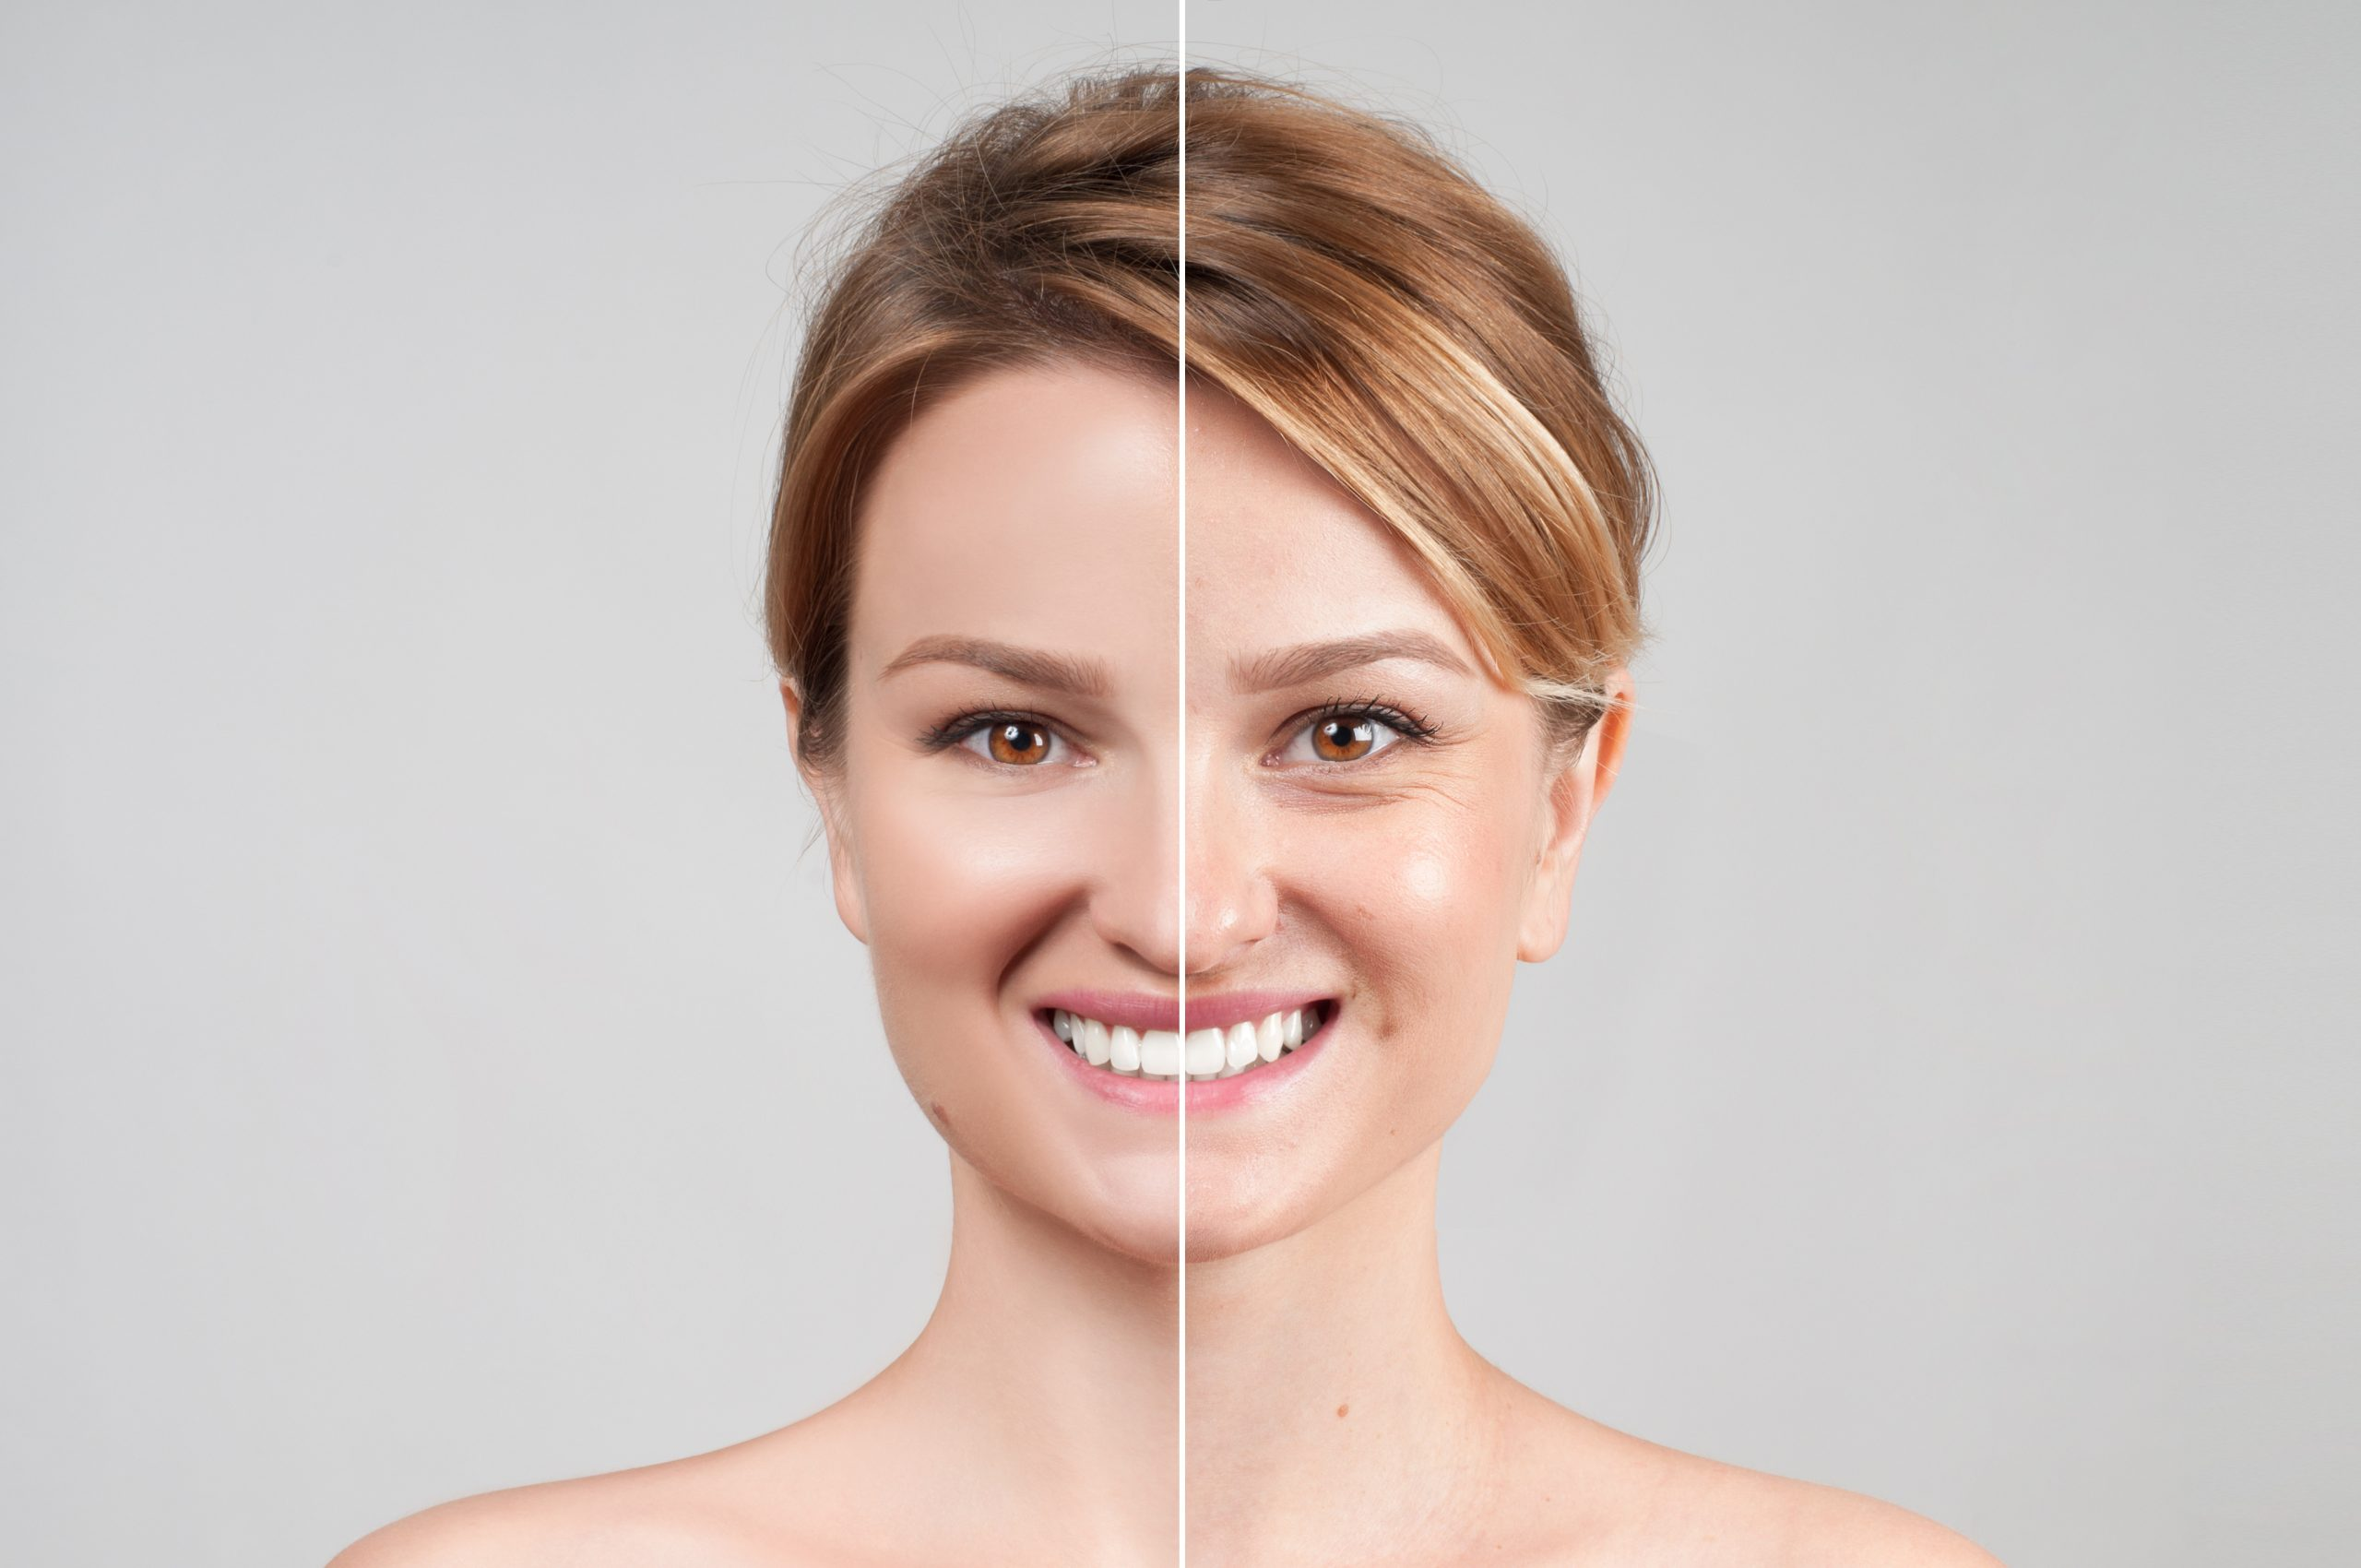 Dermatology Before and After